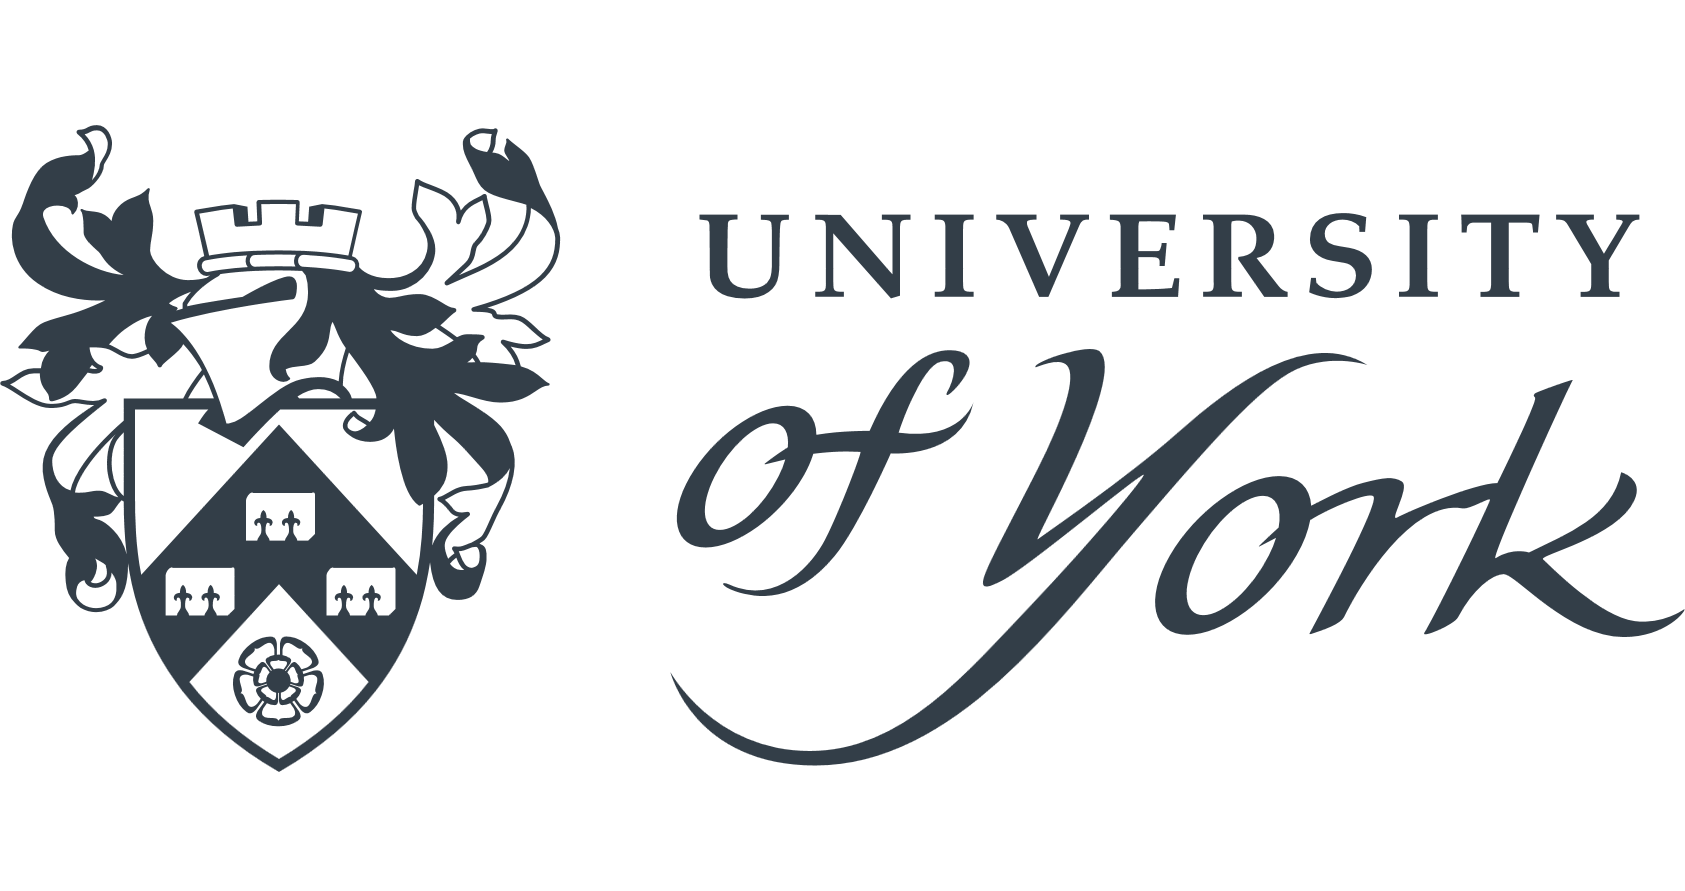 Apply to be Research Associate at University of York – Heslington Campus (Salary up to £32,000/yr)